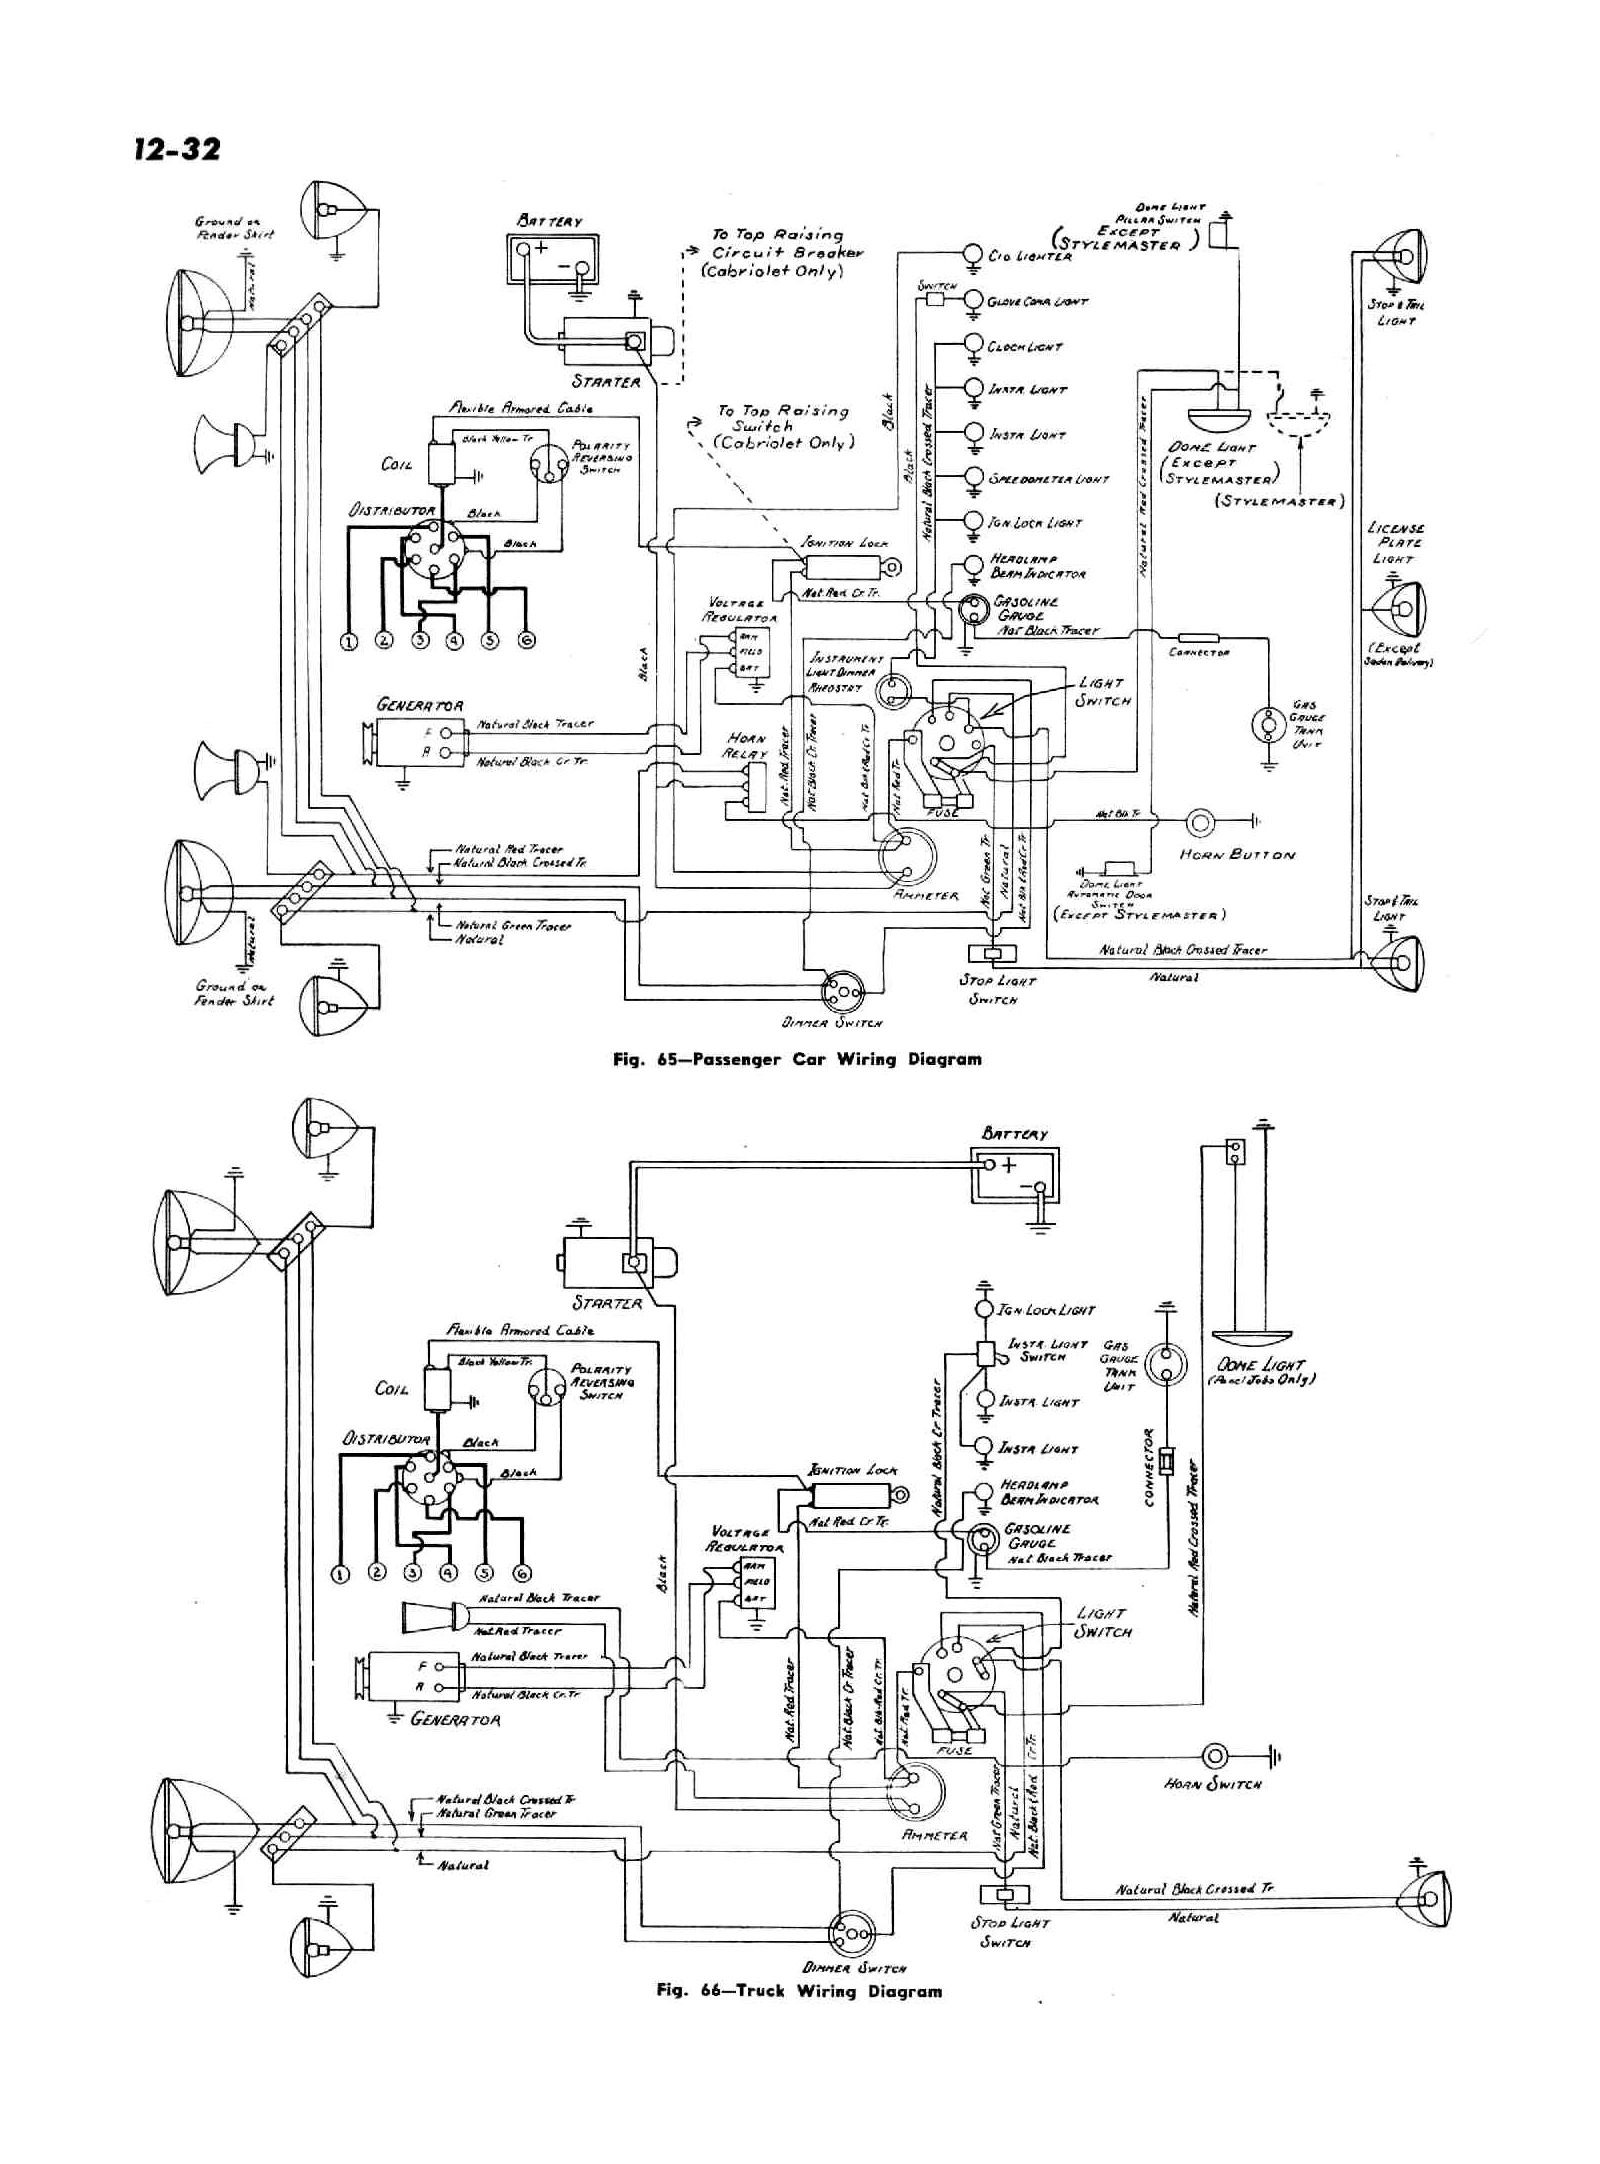 Kohler Engine Ignition Wiring Diagram Key Switch Chevy New Universal Autoctono Of